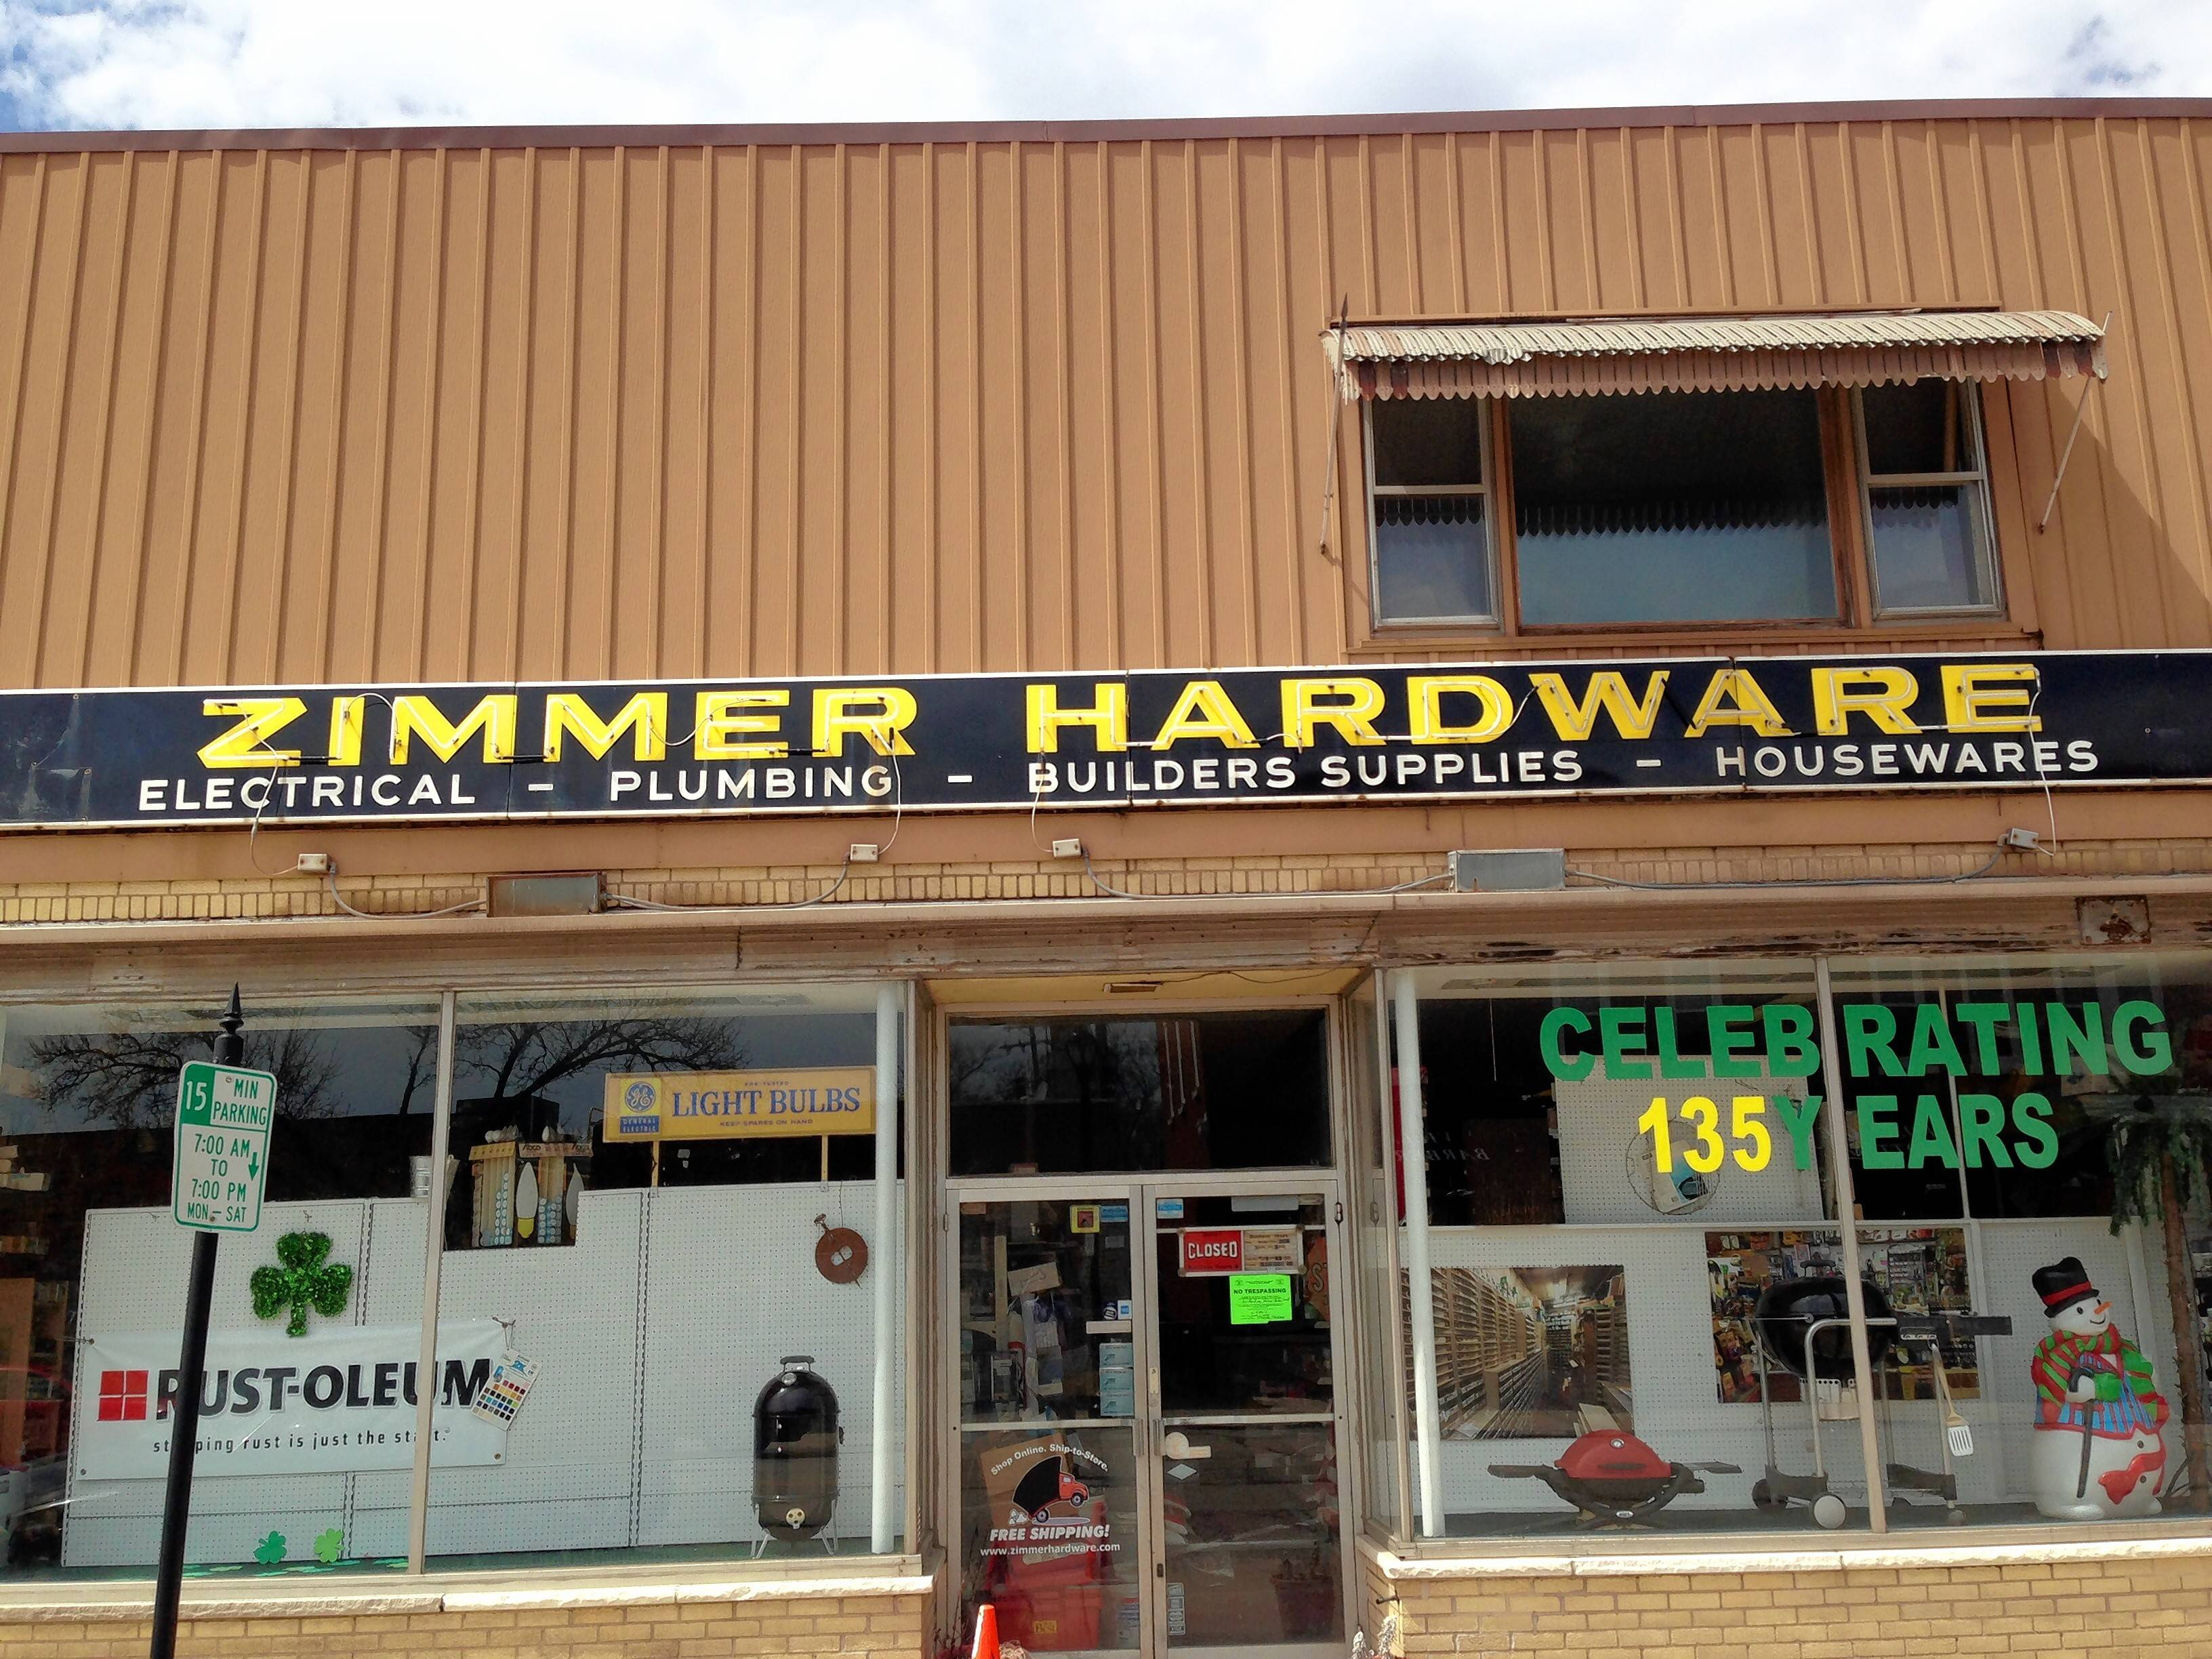 At 136 years, Zimmer Hardware was the oldest continuous business in Palatine until it closed in March. It's remembered for a certain charm that included creaky floors and odds and ends typically not found at big retailers.